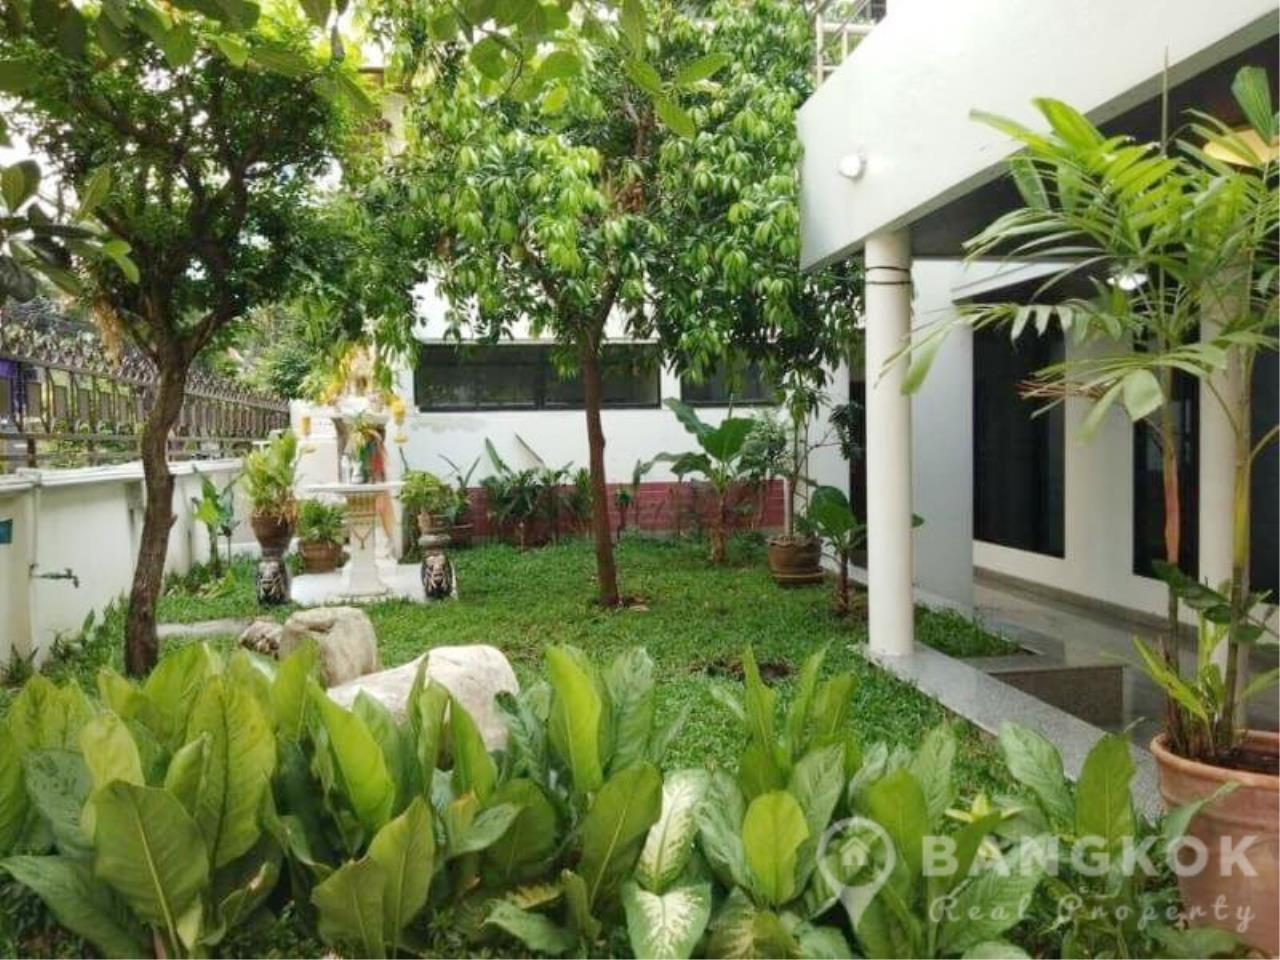 Bangkok Real Property Agency's Detached Spacious 3 + 1 Bed 3 Bath house with Garden in Nana  1